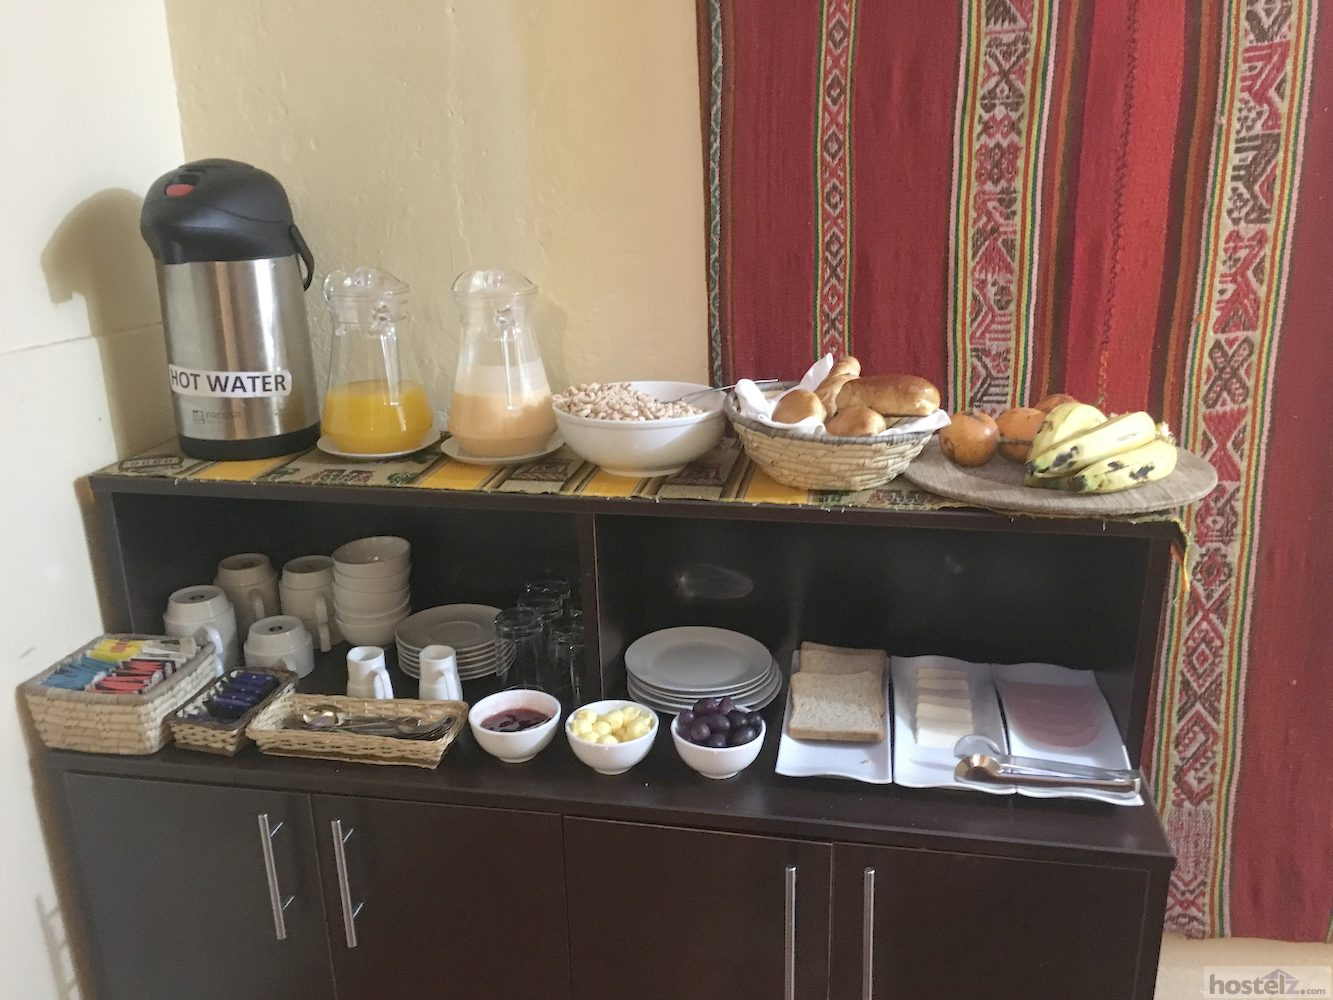 Buffet breakfast from 4am till 7am